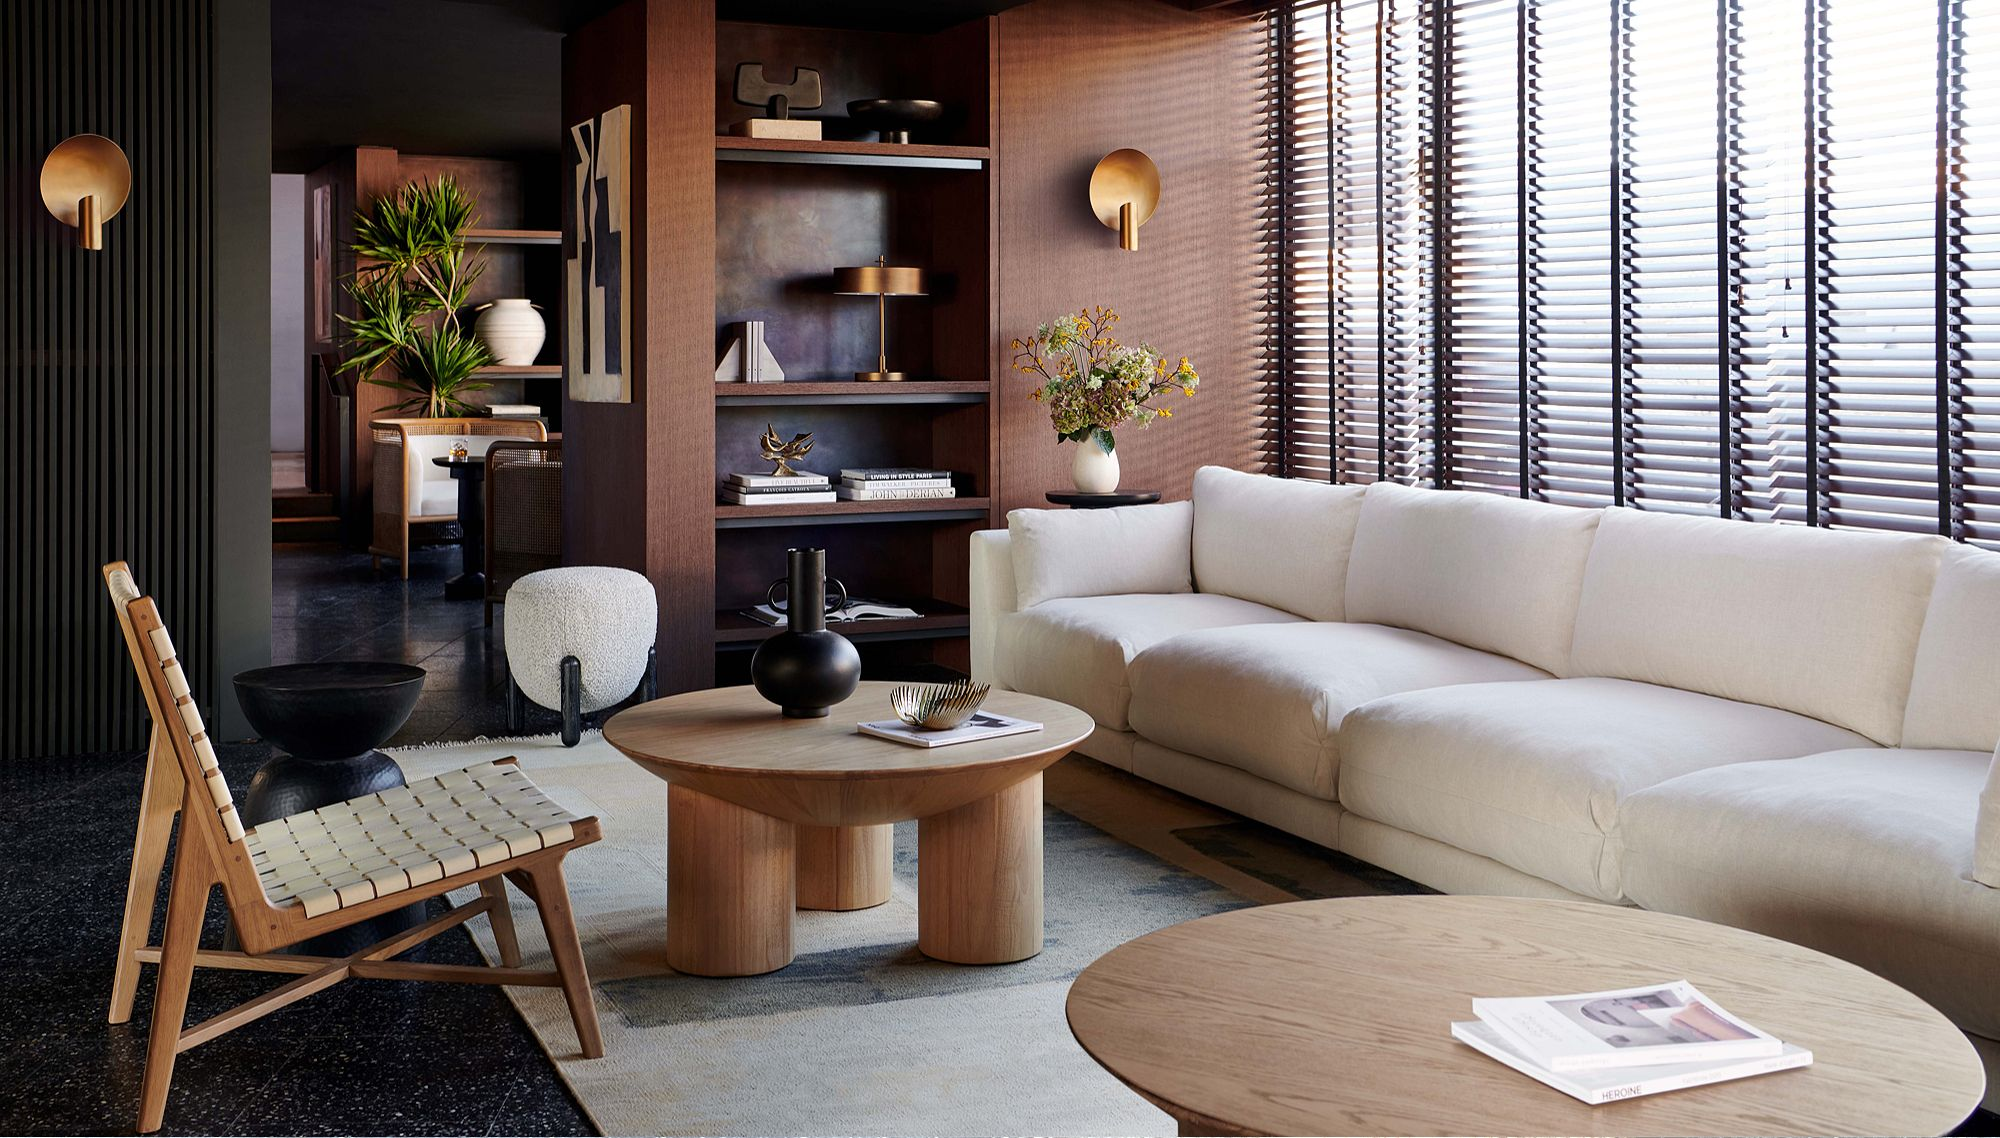 Room with long white couch and two circular wood accent tables